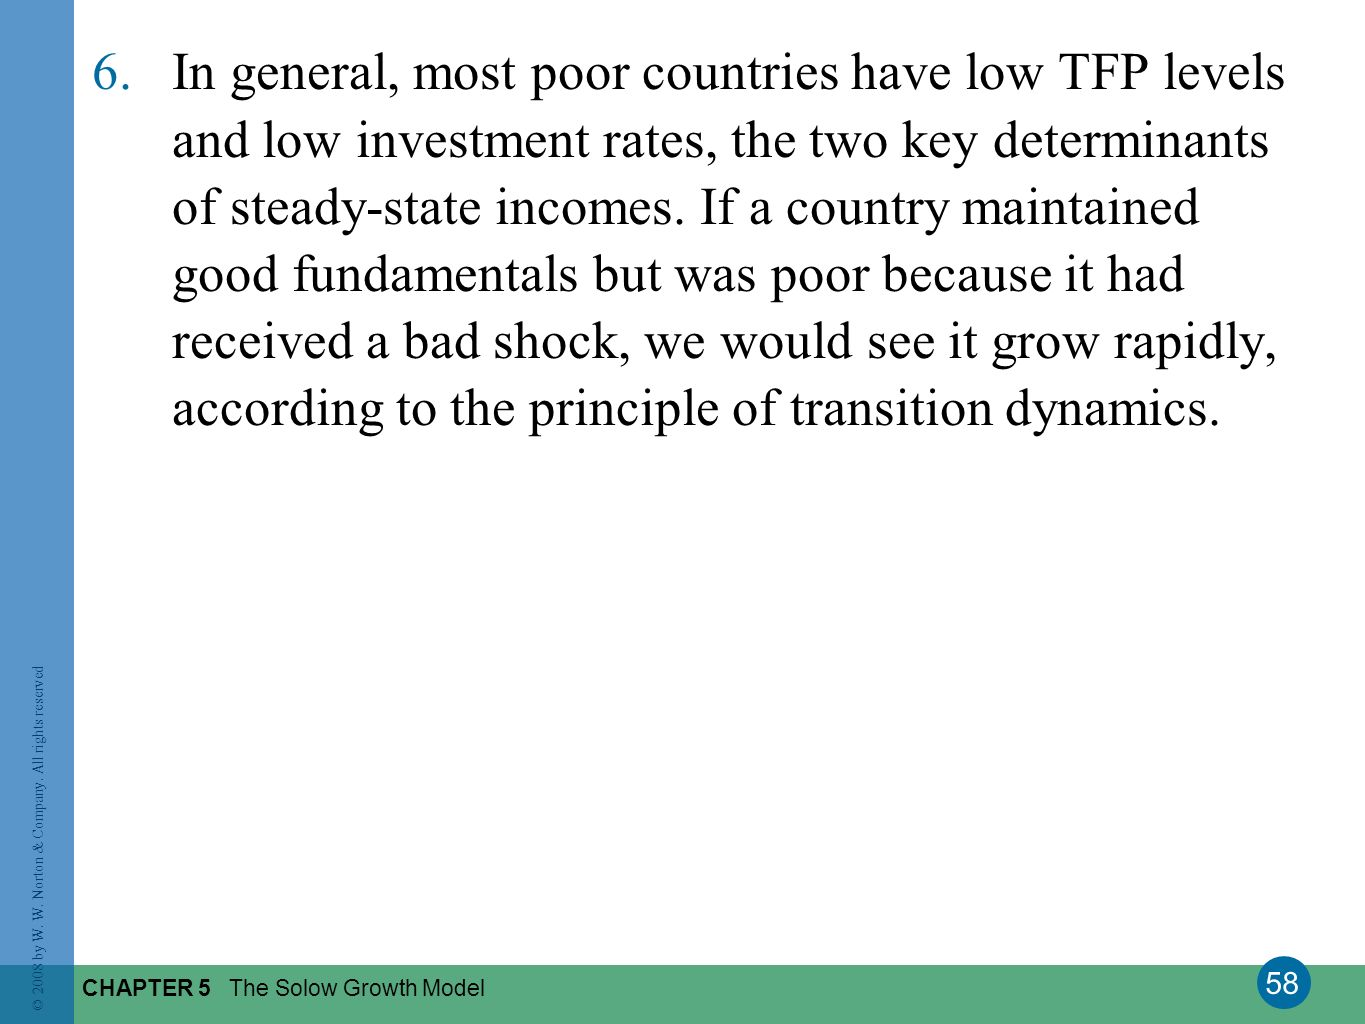 In general, most poor countries have low TFP levels and low investment rates, the two key determinants of steady-state incomes. If a country maintained good fundamentals but was poor because it had received a bad shock, we would see it grow rapidly, according to the principle of transition dynamics.